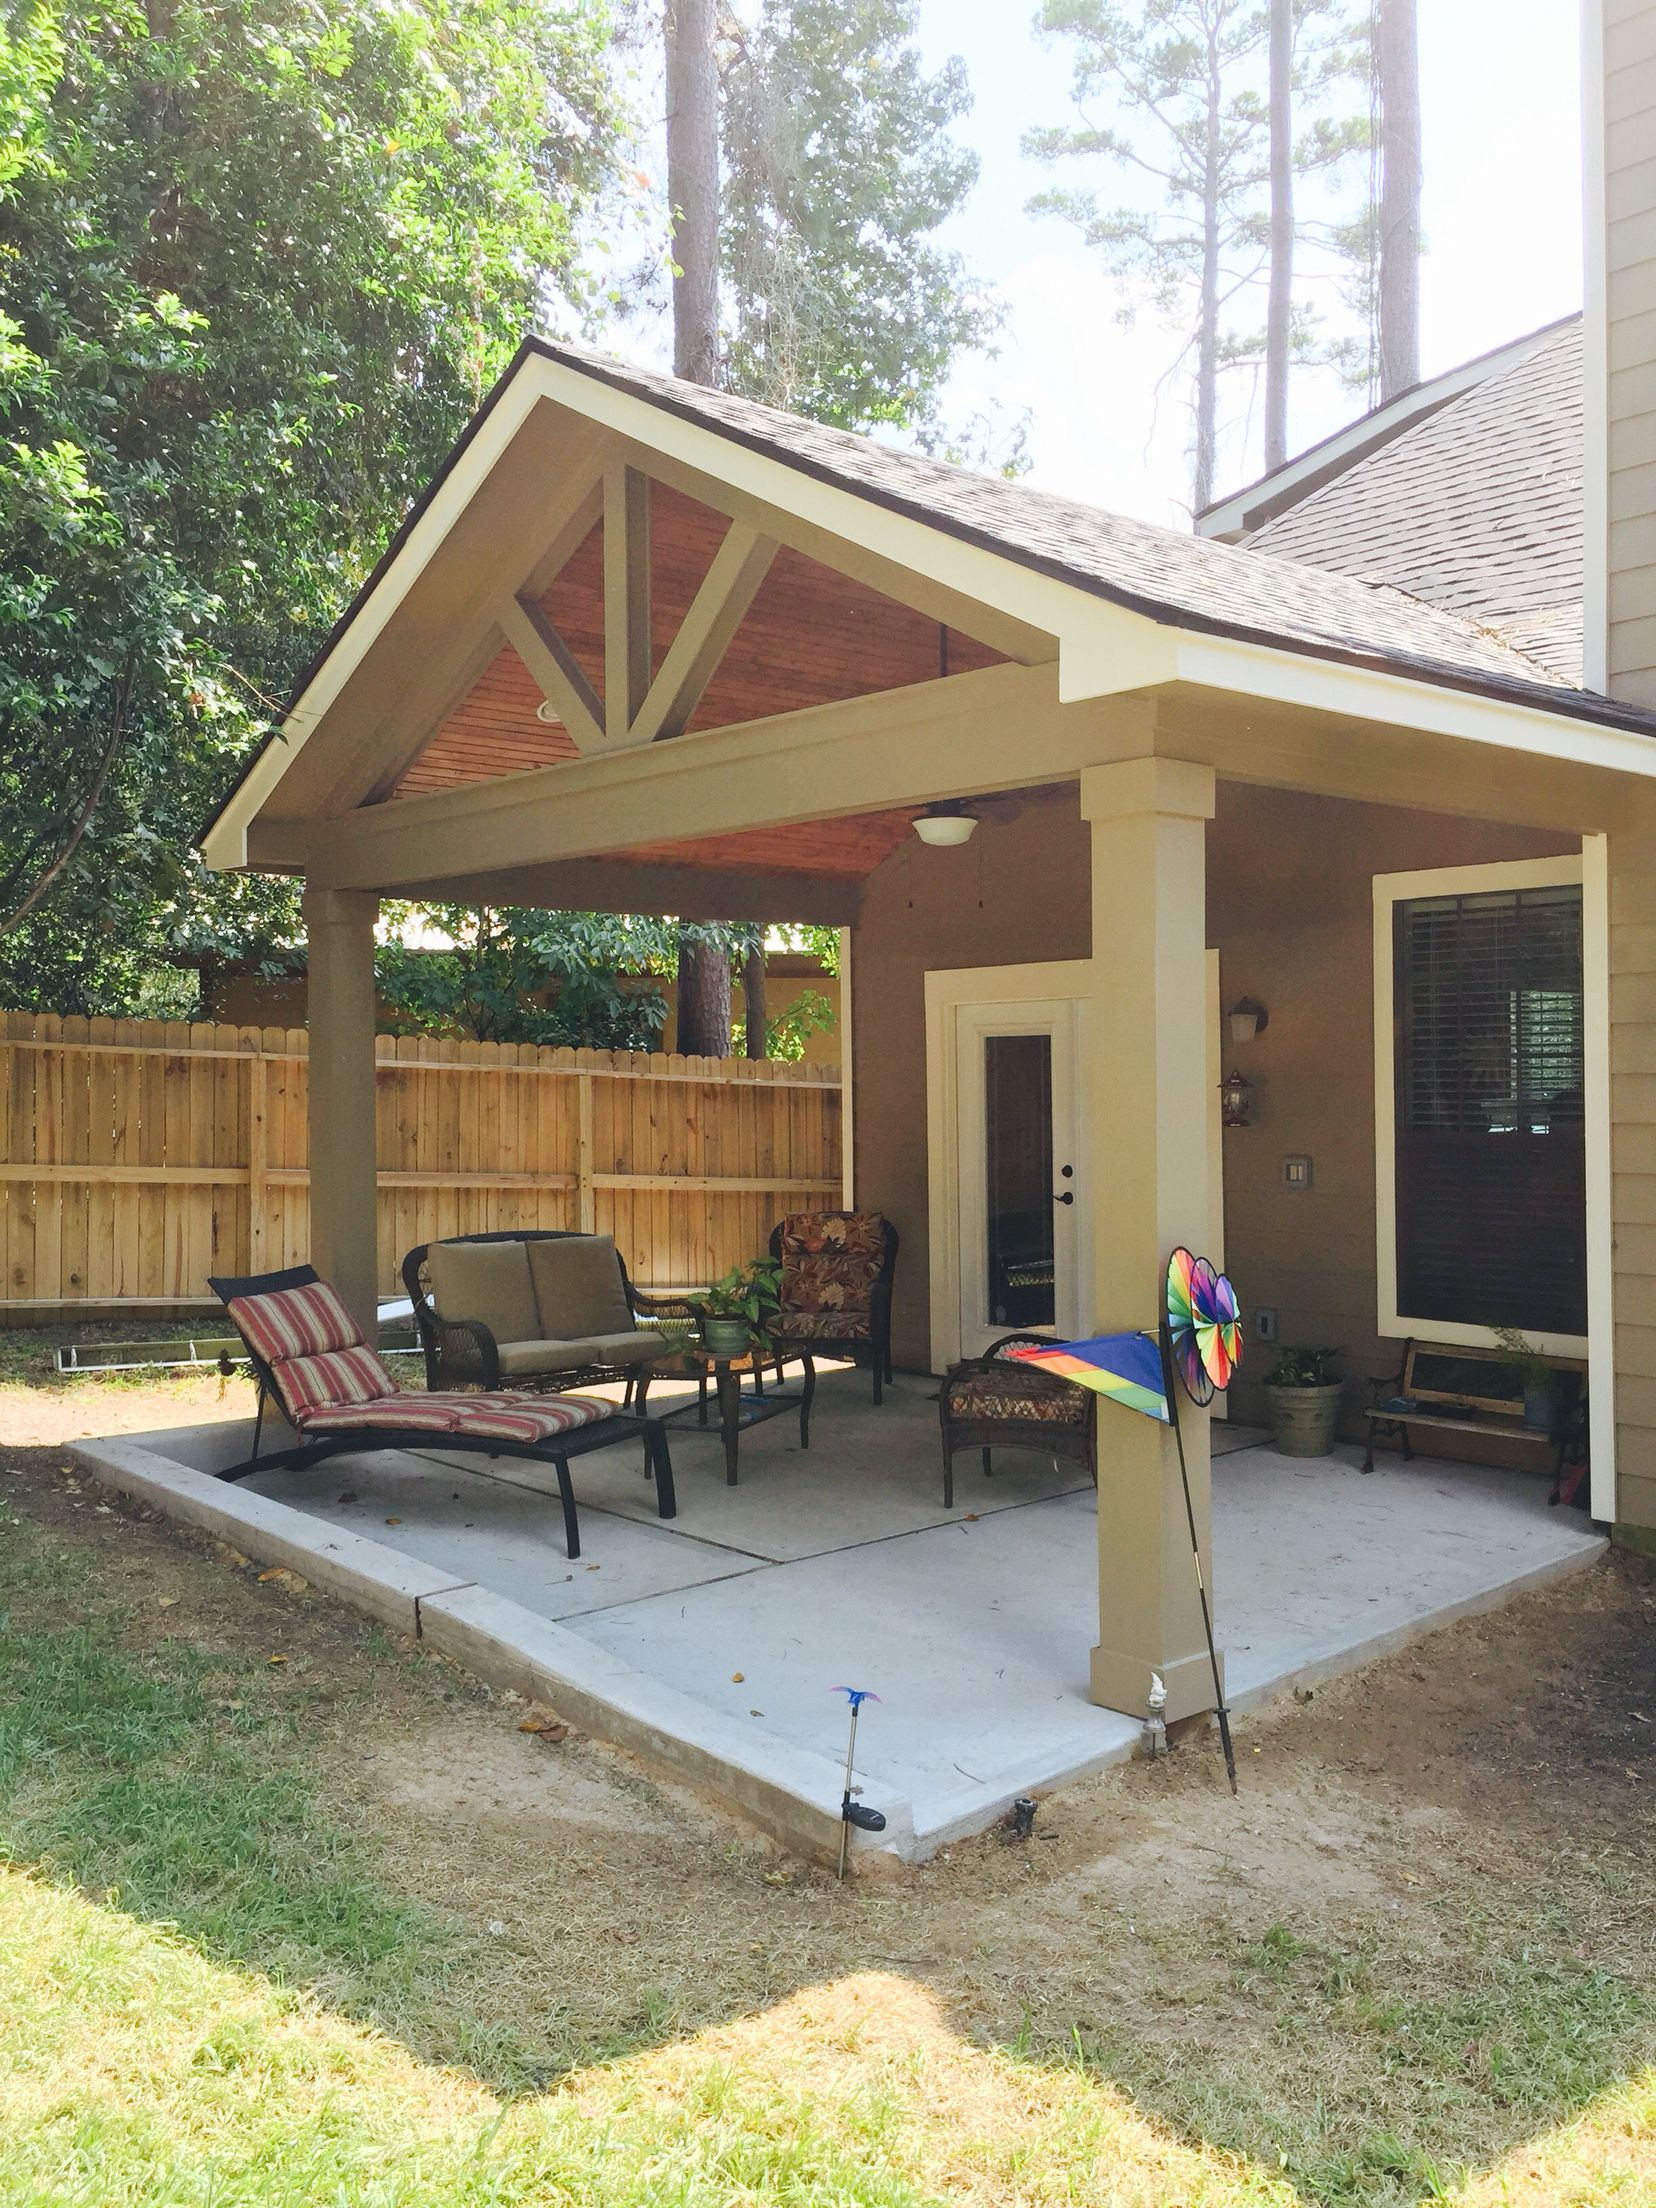 Gable Roof Patio Cover With Wood Stained Ceiling | Go ...